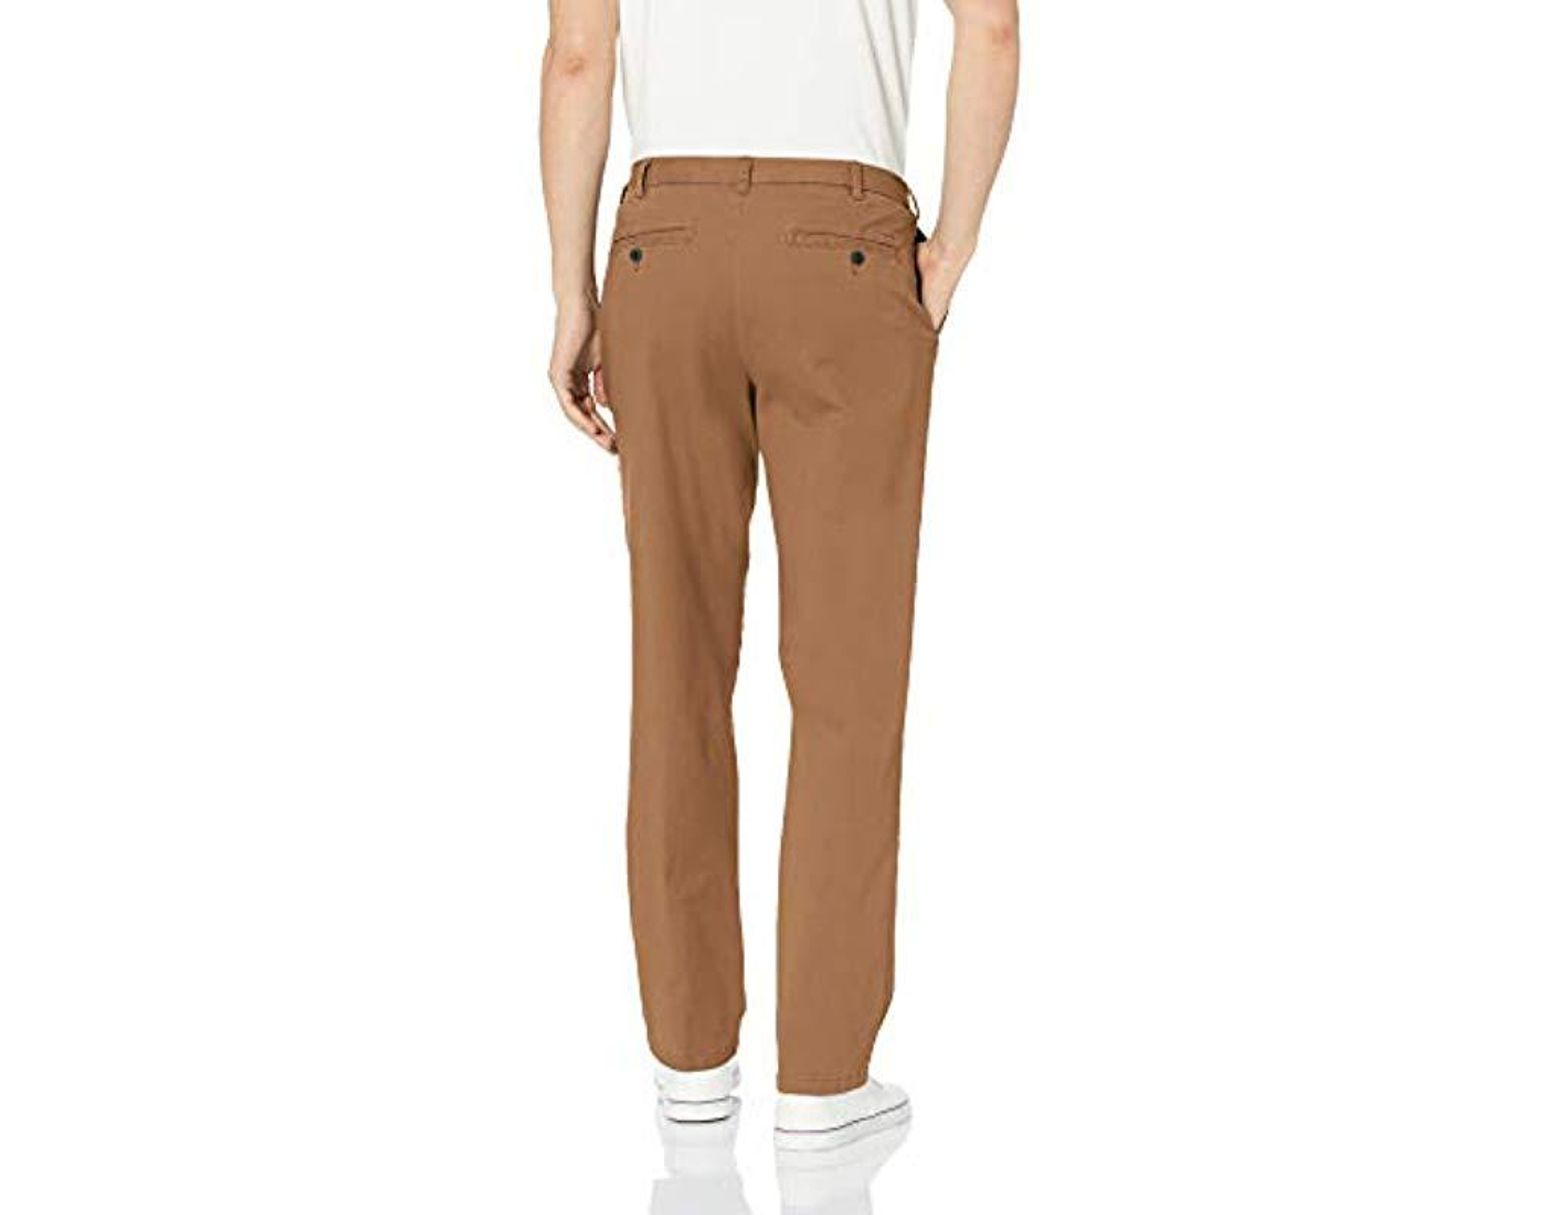 68de0b3ed769e1 Izod Saltwater Stretch Flat Front Straight Fit Chino Pant in Brown for Men  - Lyst